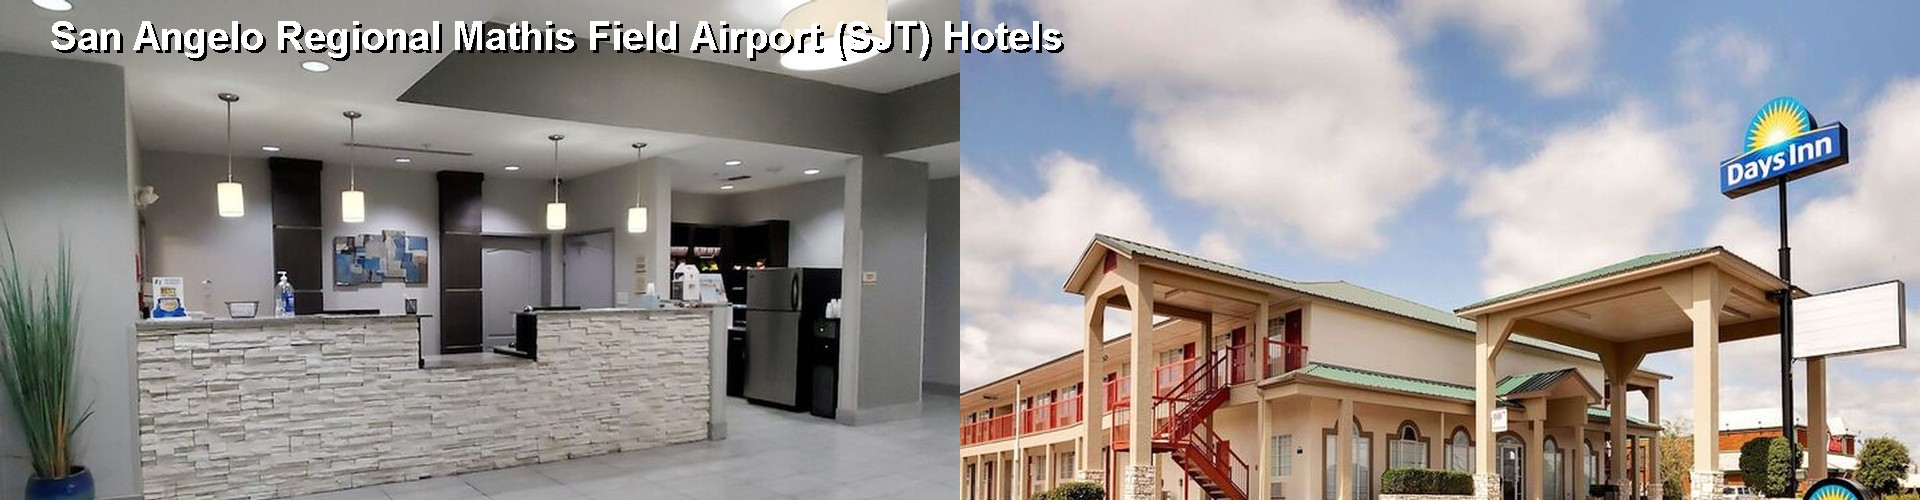 5 Best Hotels near San Angelo Regional Mathis Field Airport (SJT)